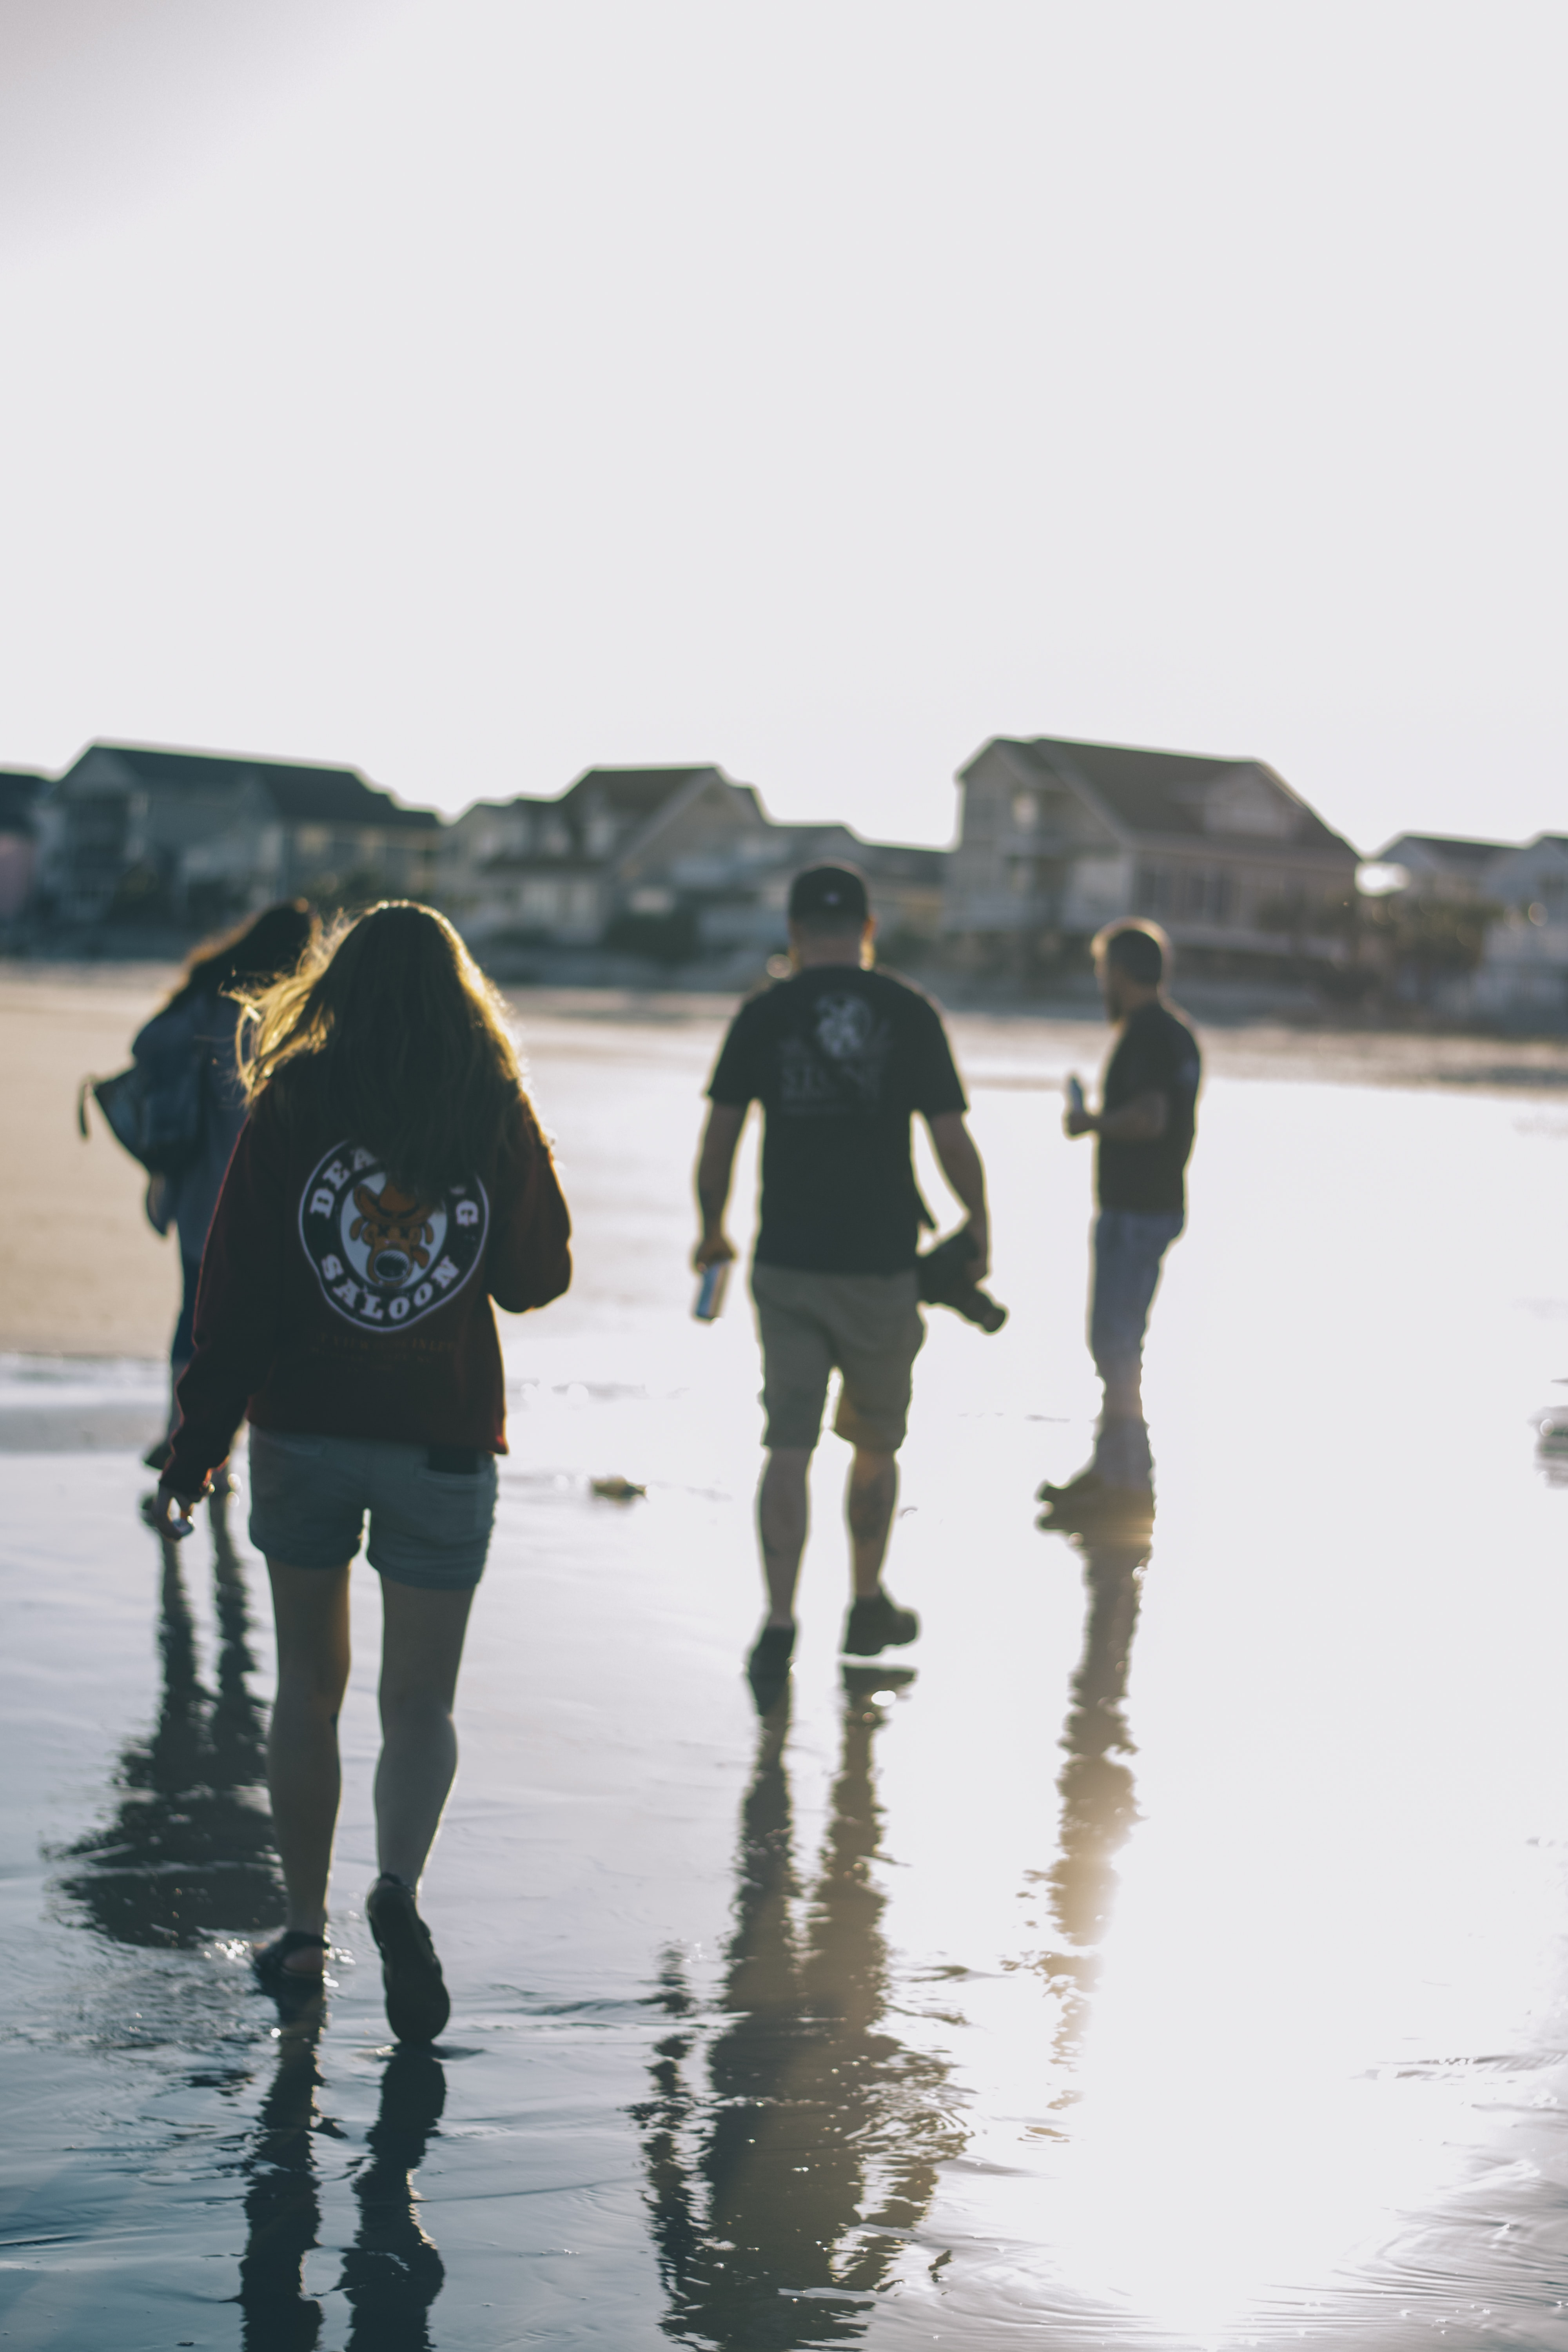 four people walking on wet ground